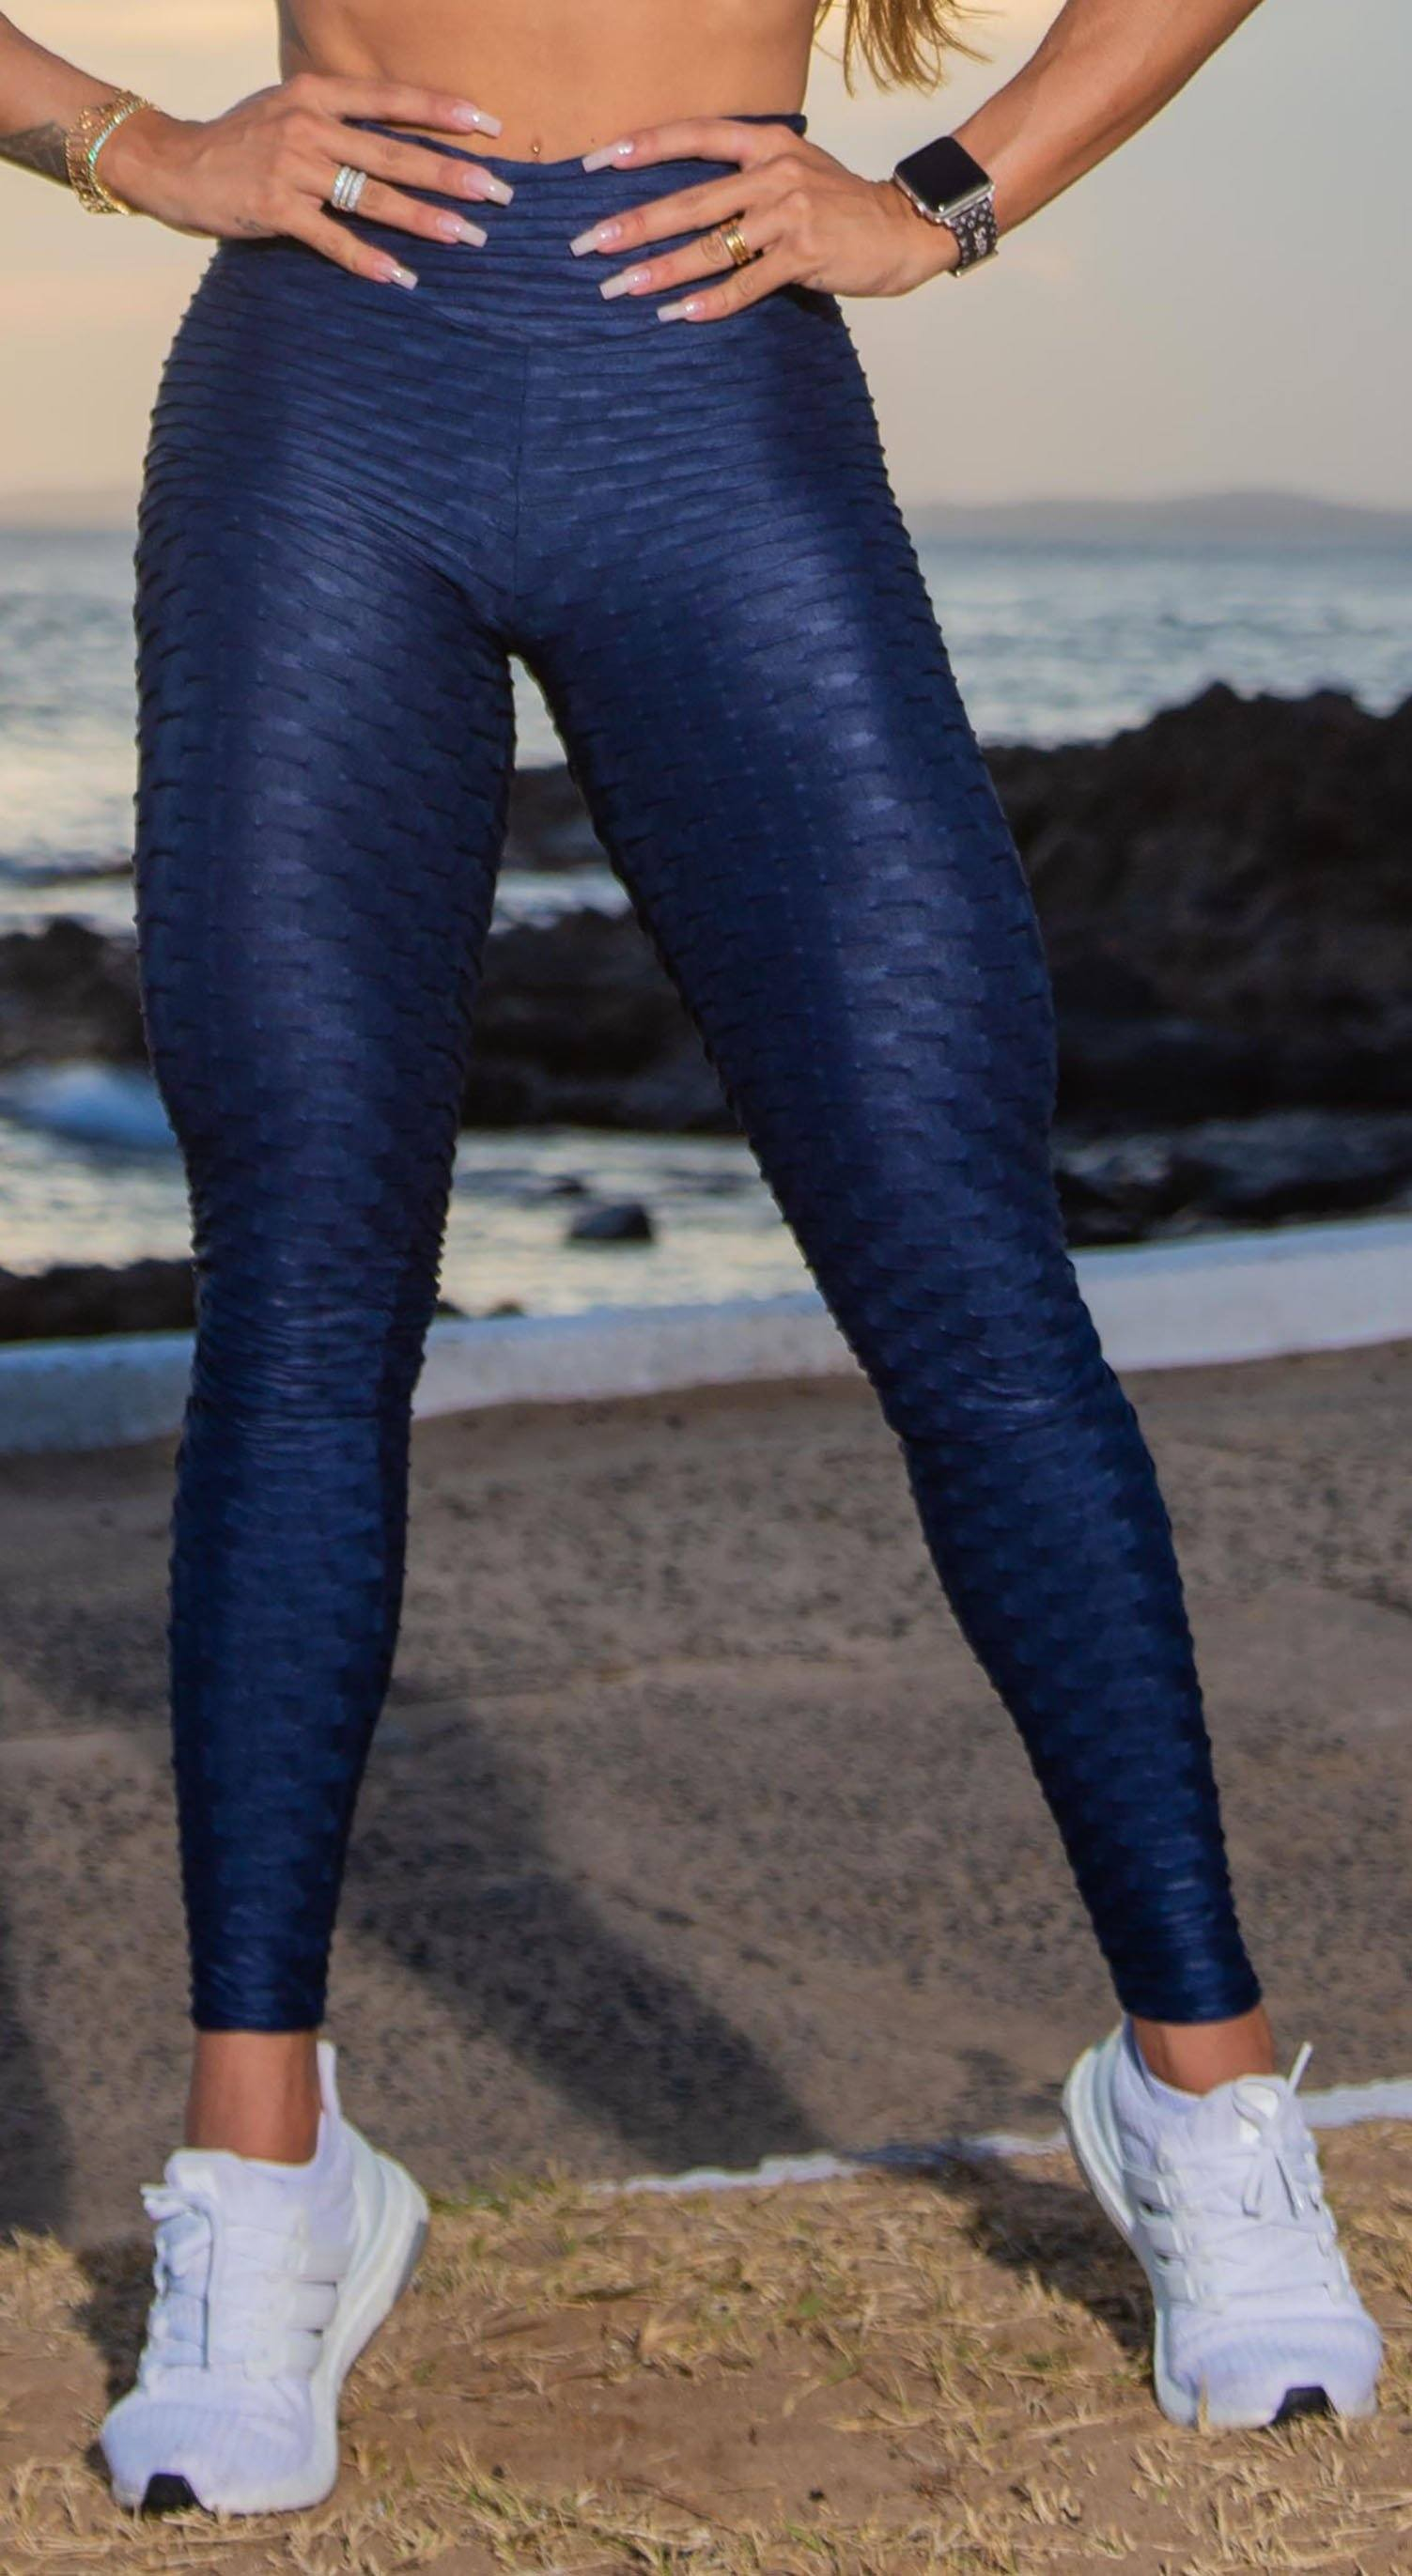 High Waist Anti Cellulite Textured Shiny Navy Leggings